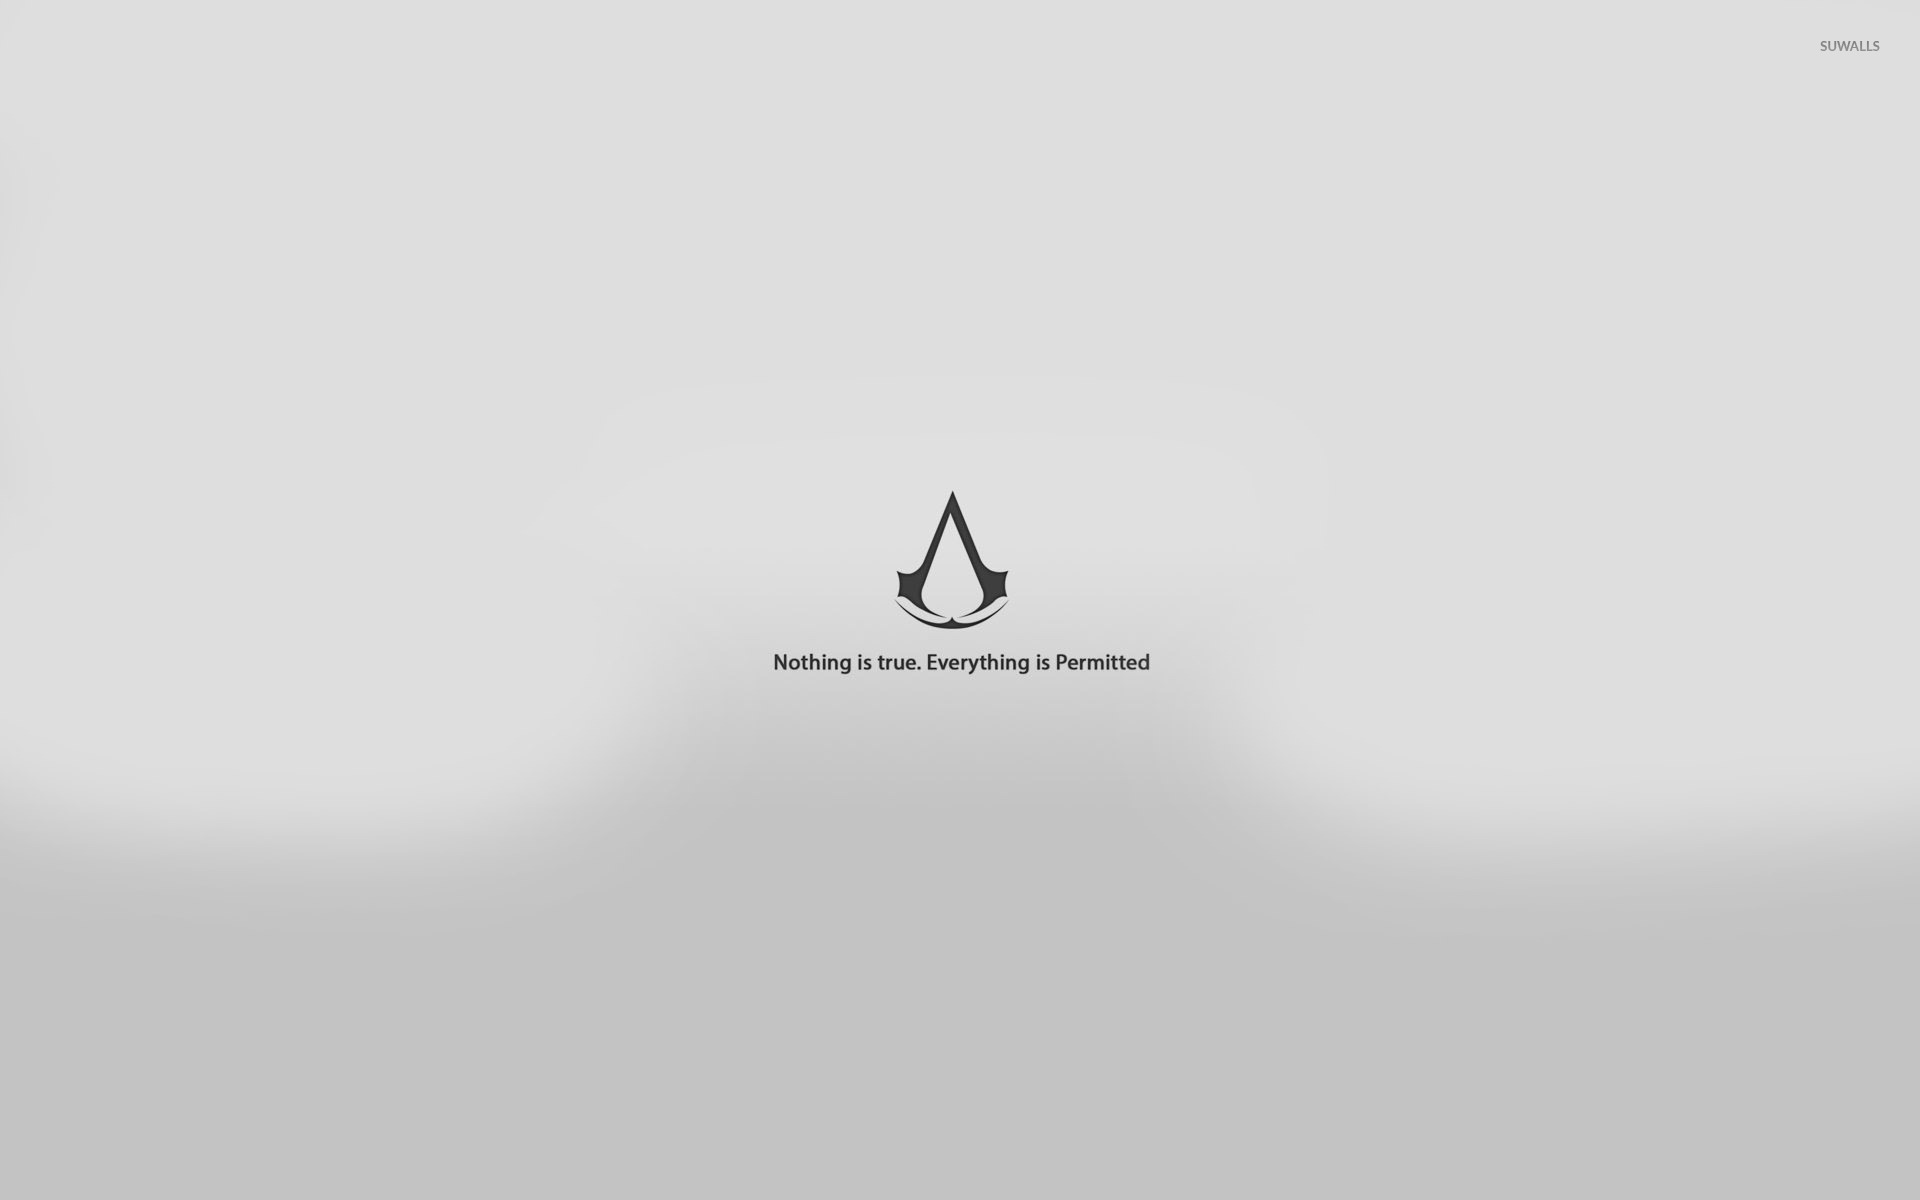 Nothing Is True Everything Is Permitted Wallpaper Game